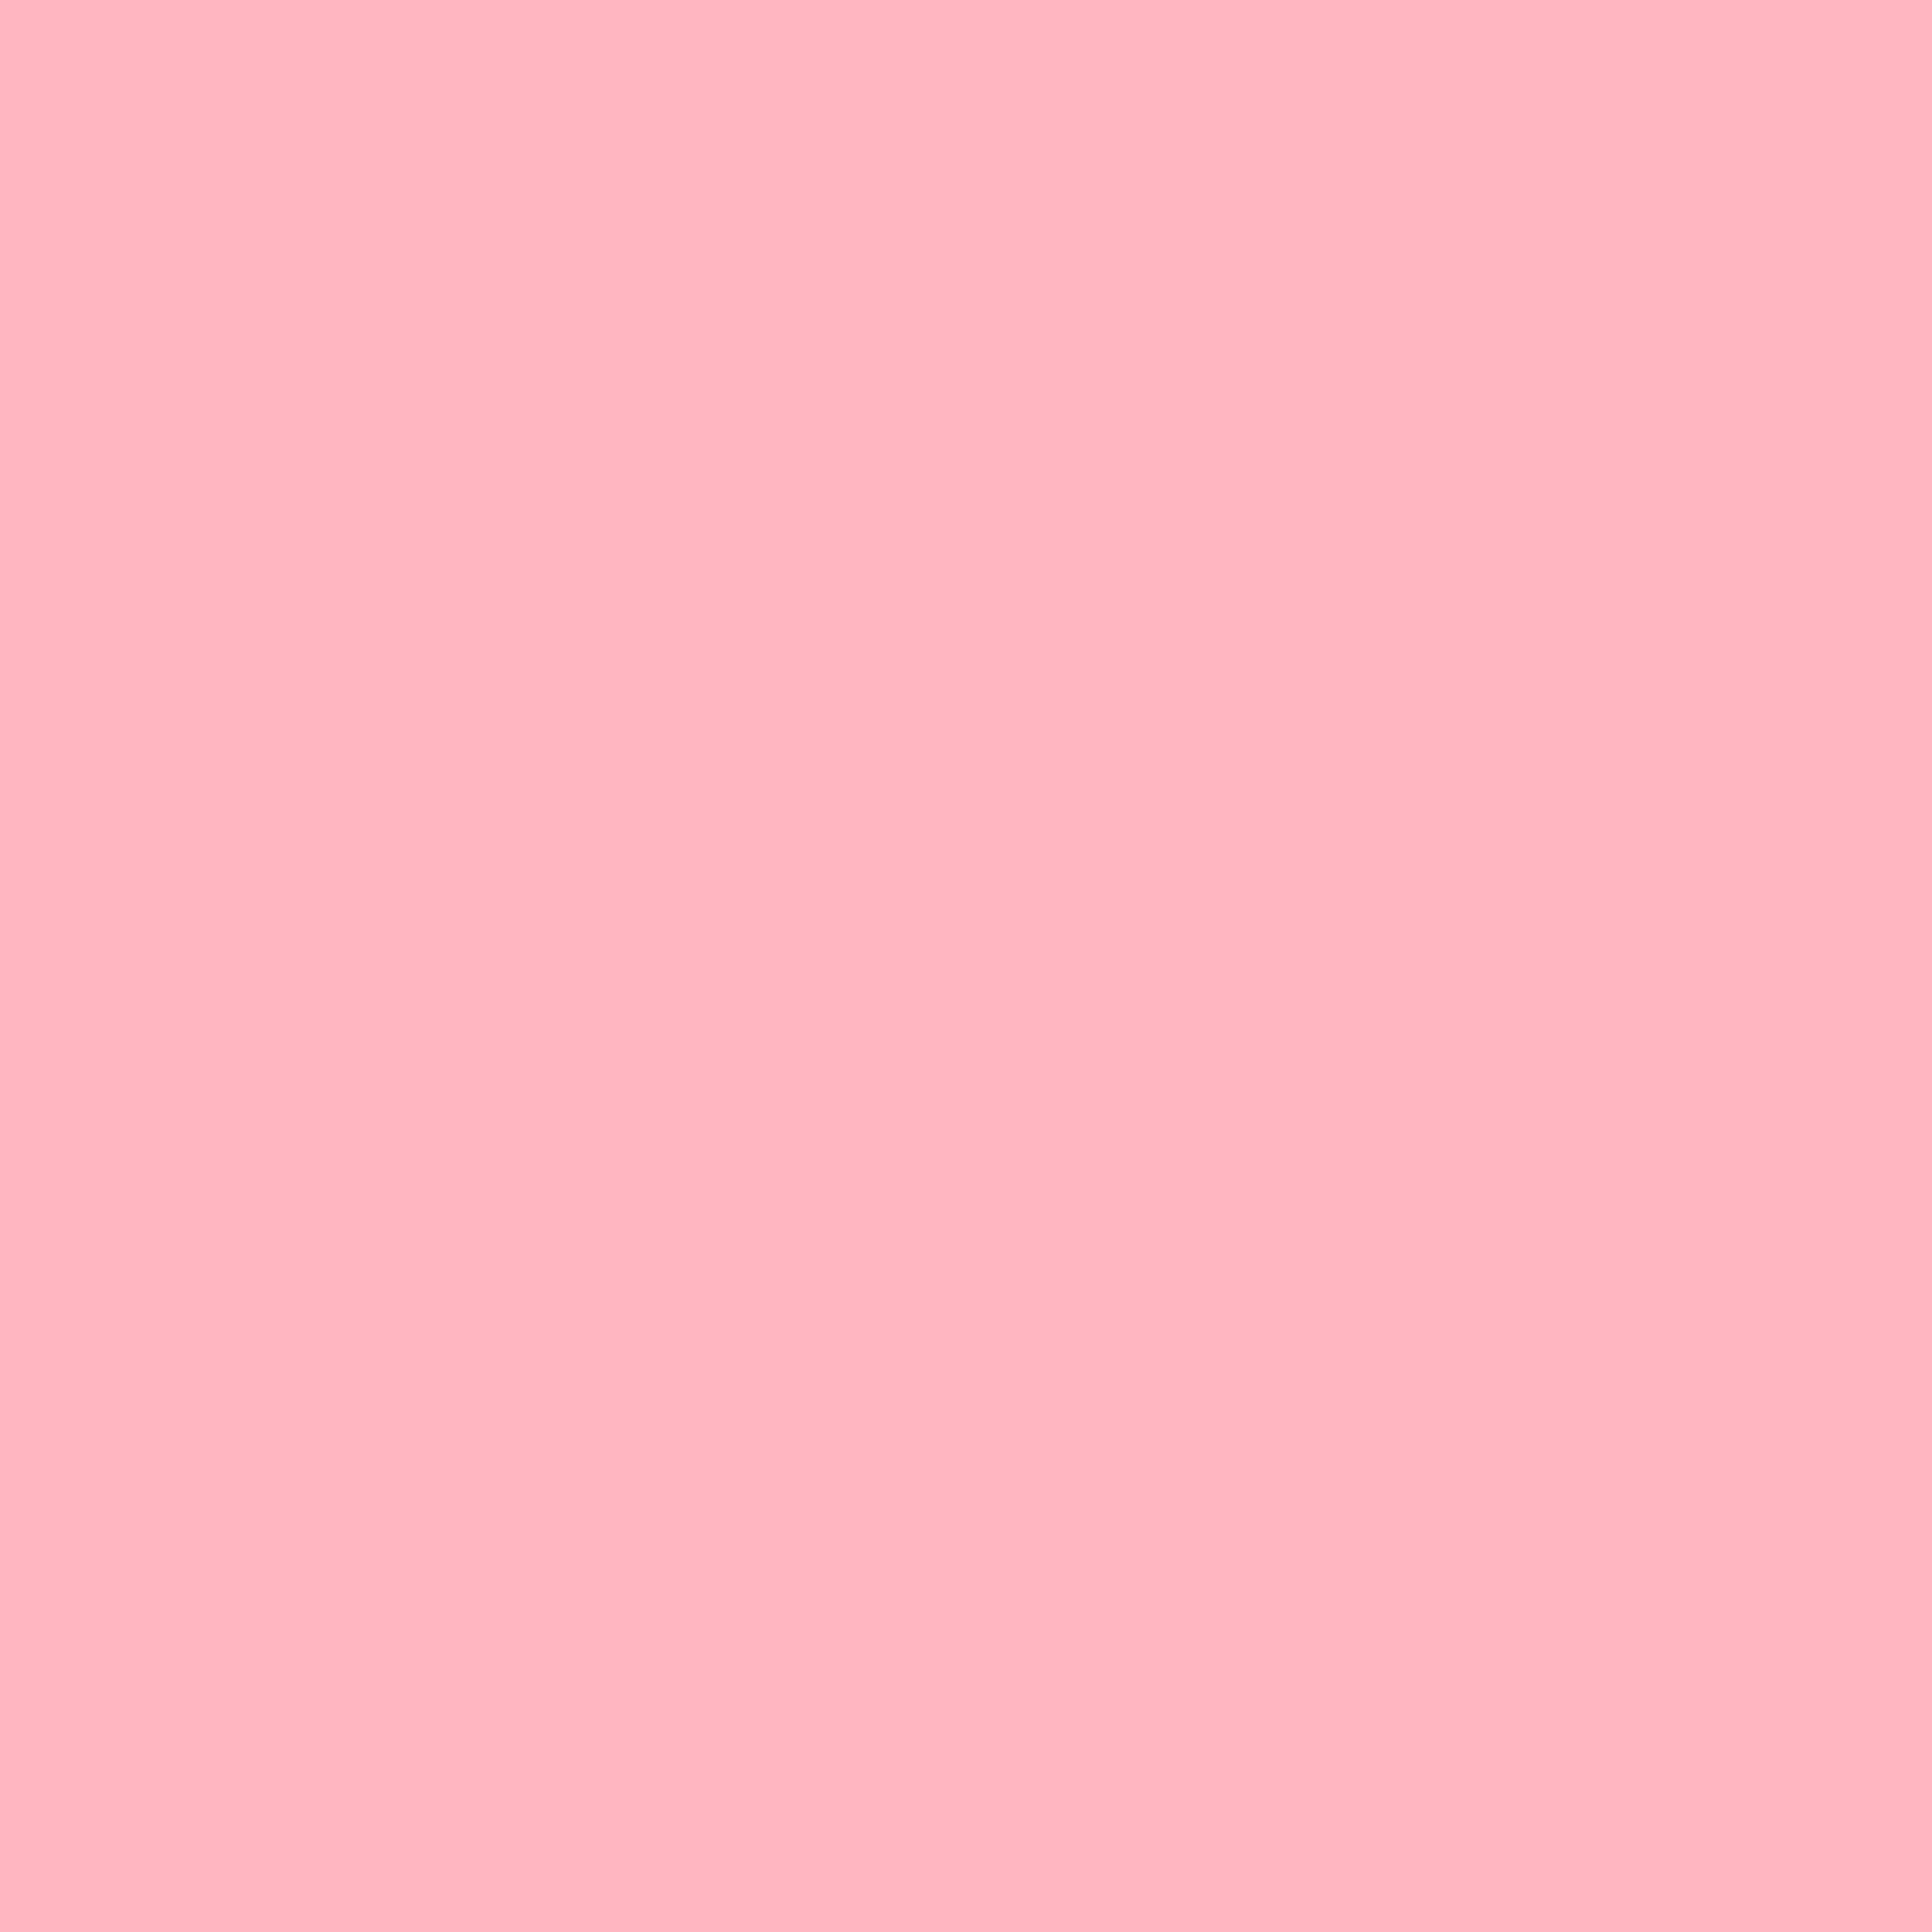 tumblr backgrounds light pink - photo #17